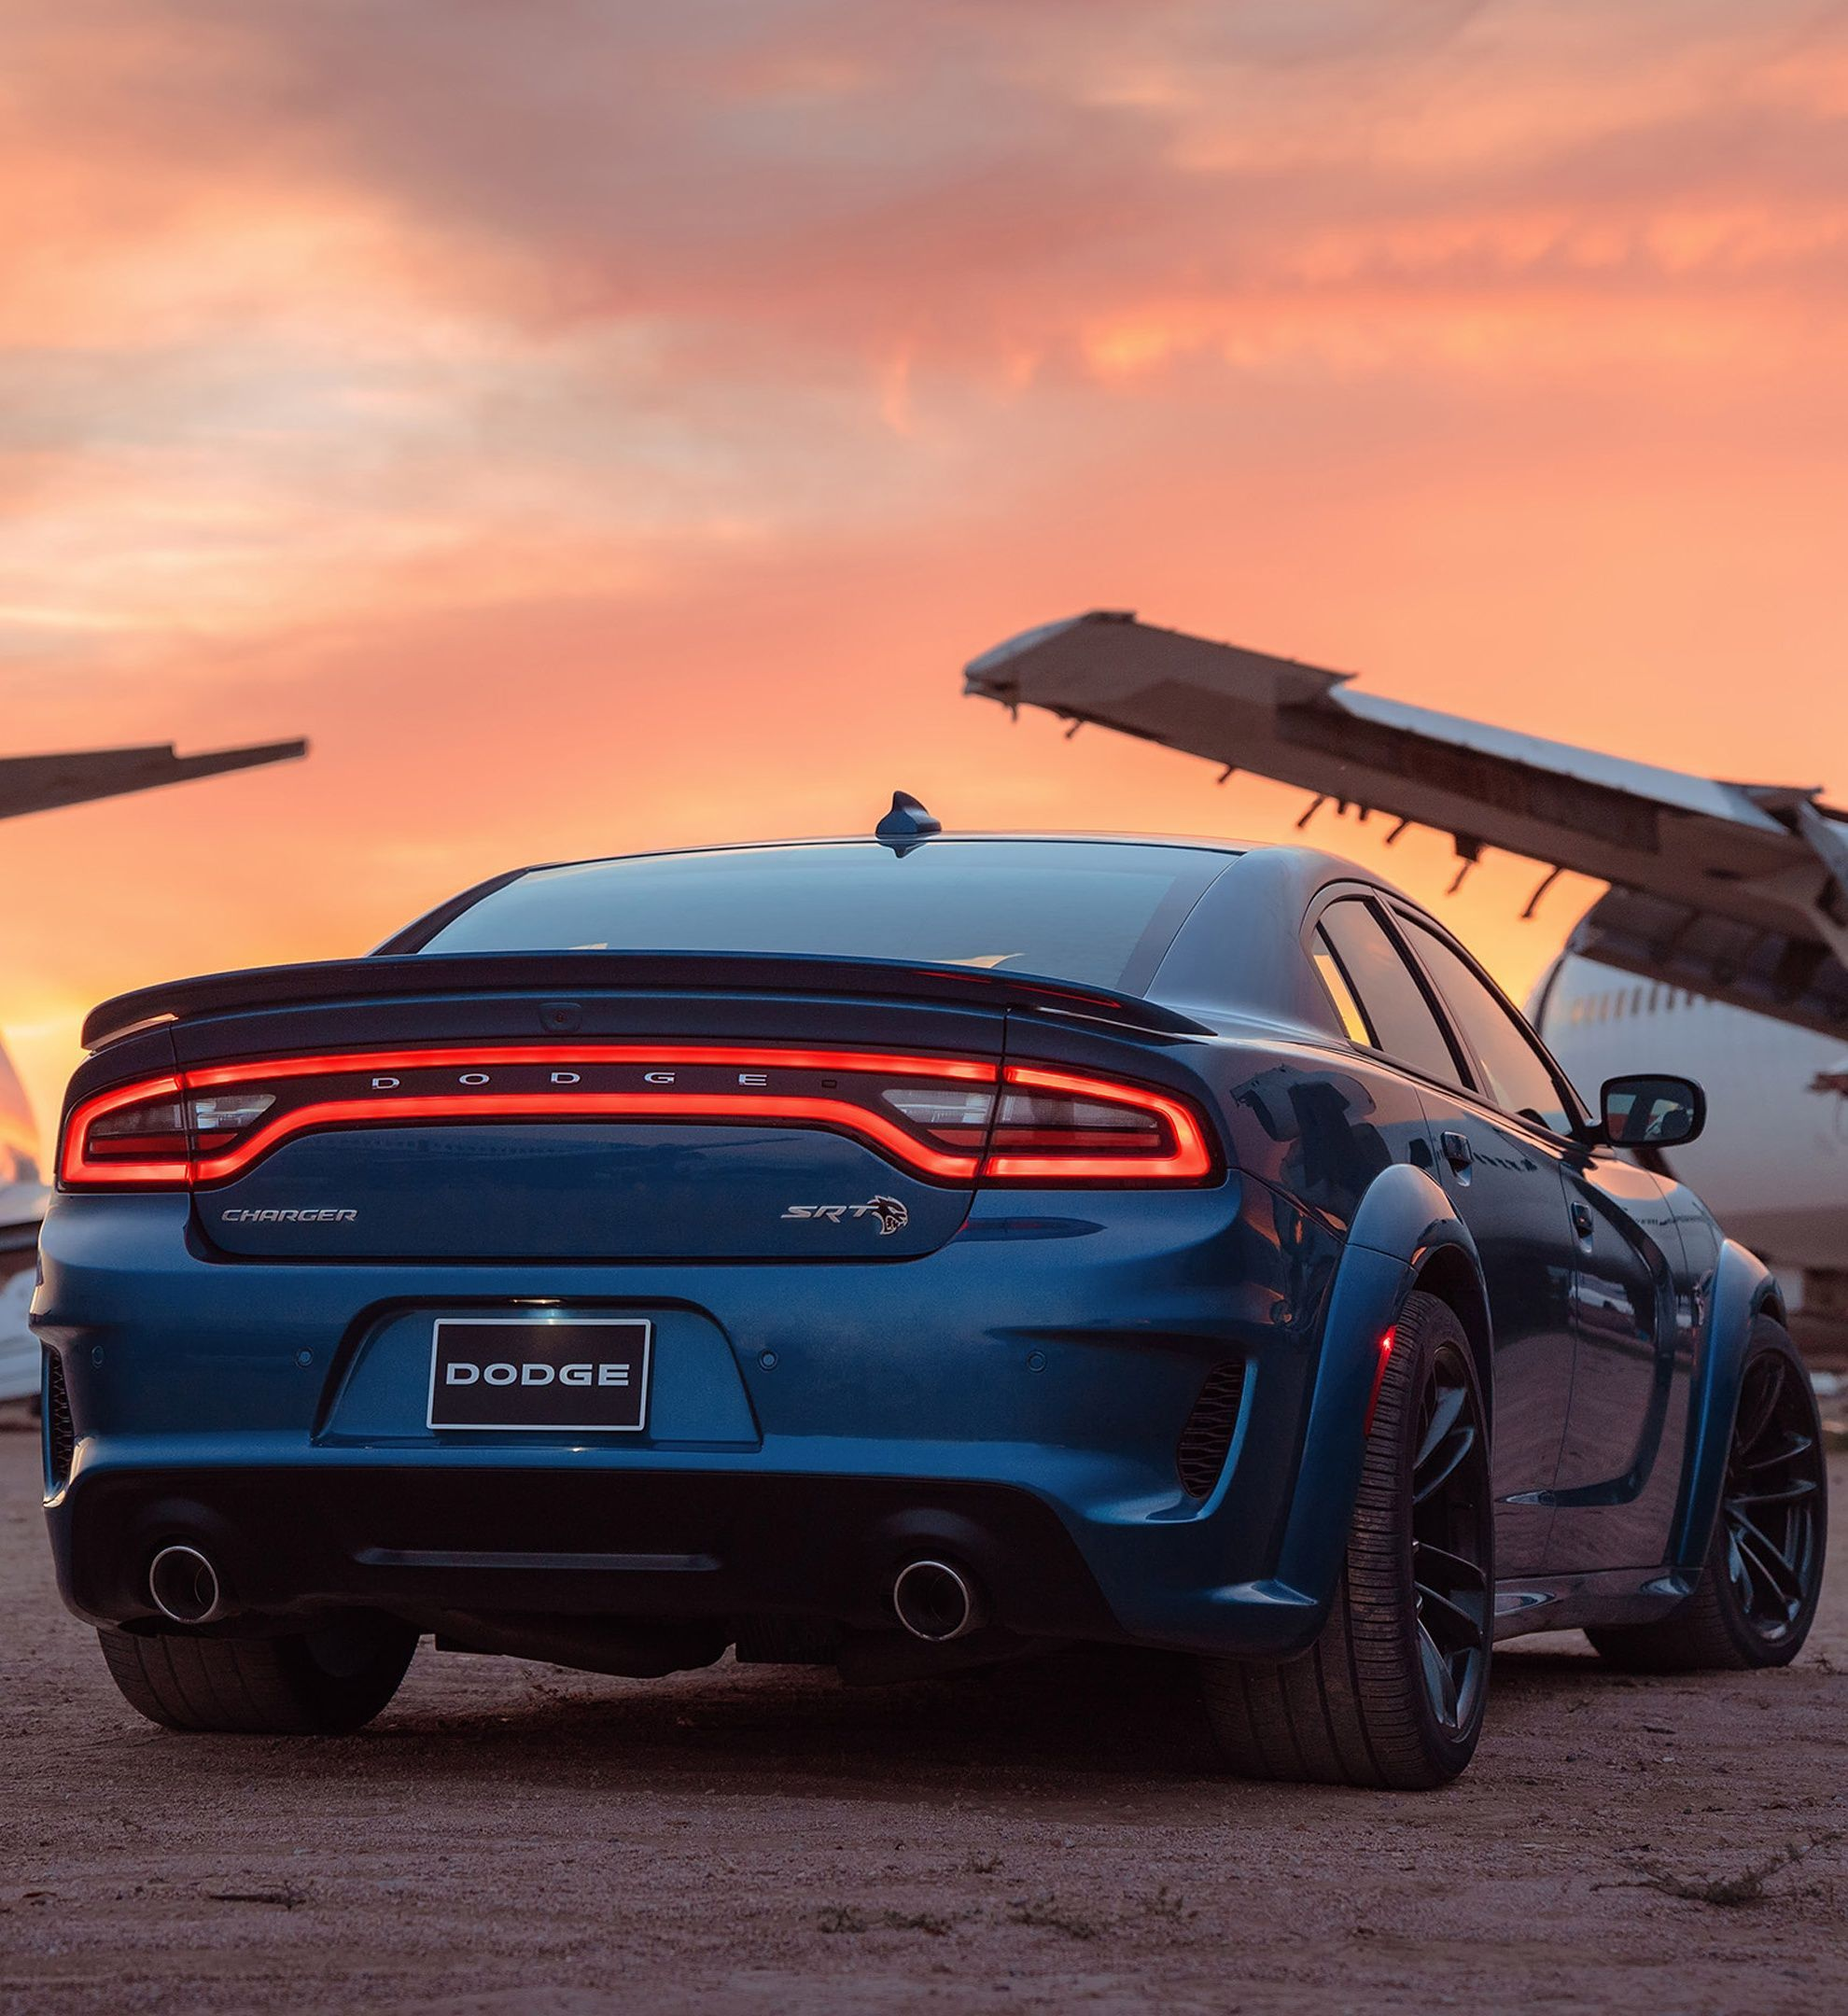 2020 Dodge Charger Srt Hellcat Widebody Charger Dodge Hellcat Modifiedcarquotes Srt W In 2020 Charger Srt Hellcat Dodge Charger Srt Dodge Charger